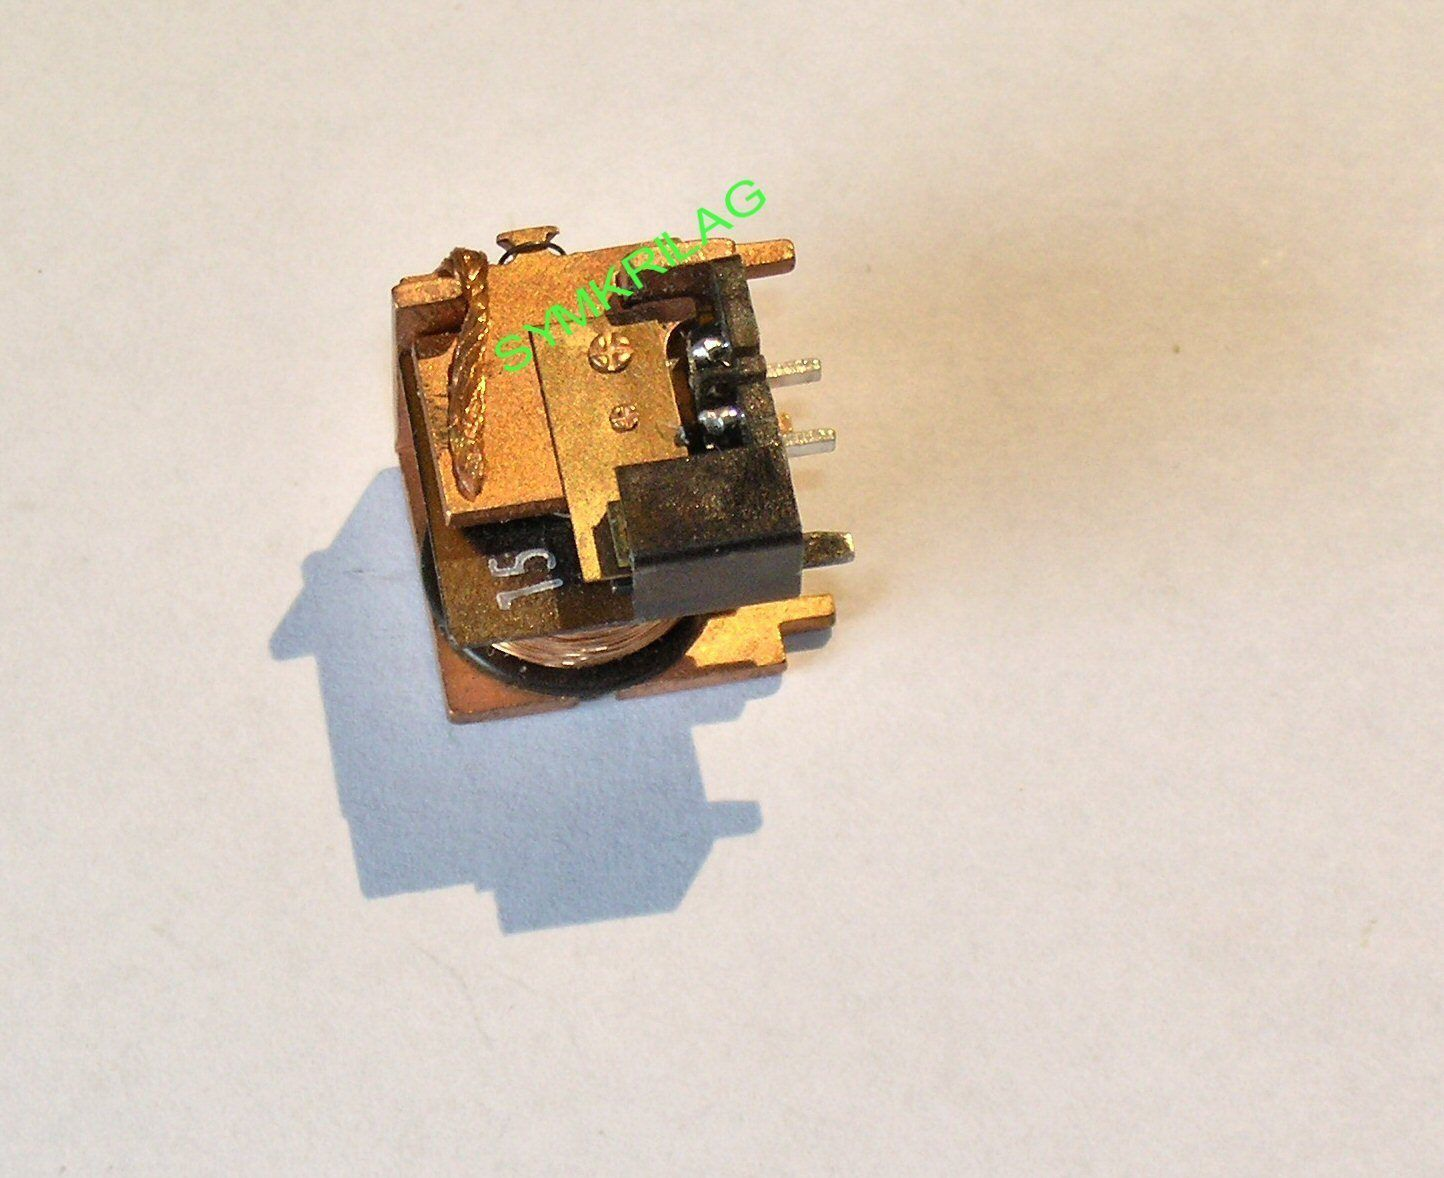 Siemens Power Relay Pure Copper 6v 16a Small Dimentions For Pcb Electrical Uk